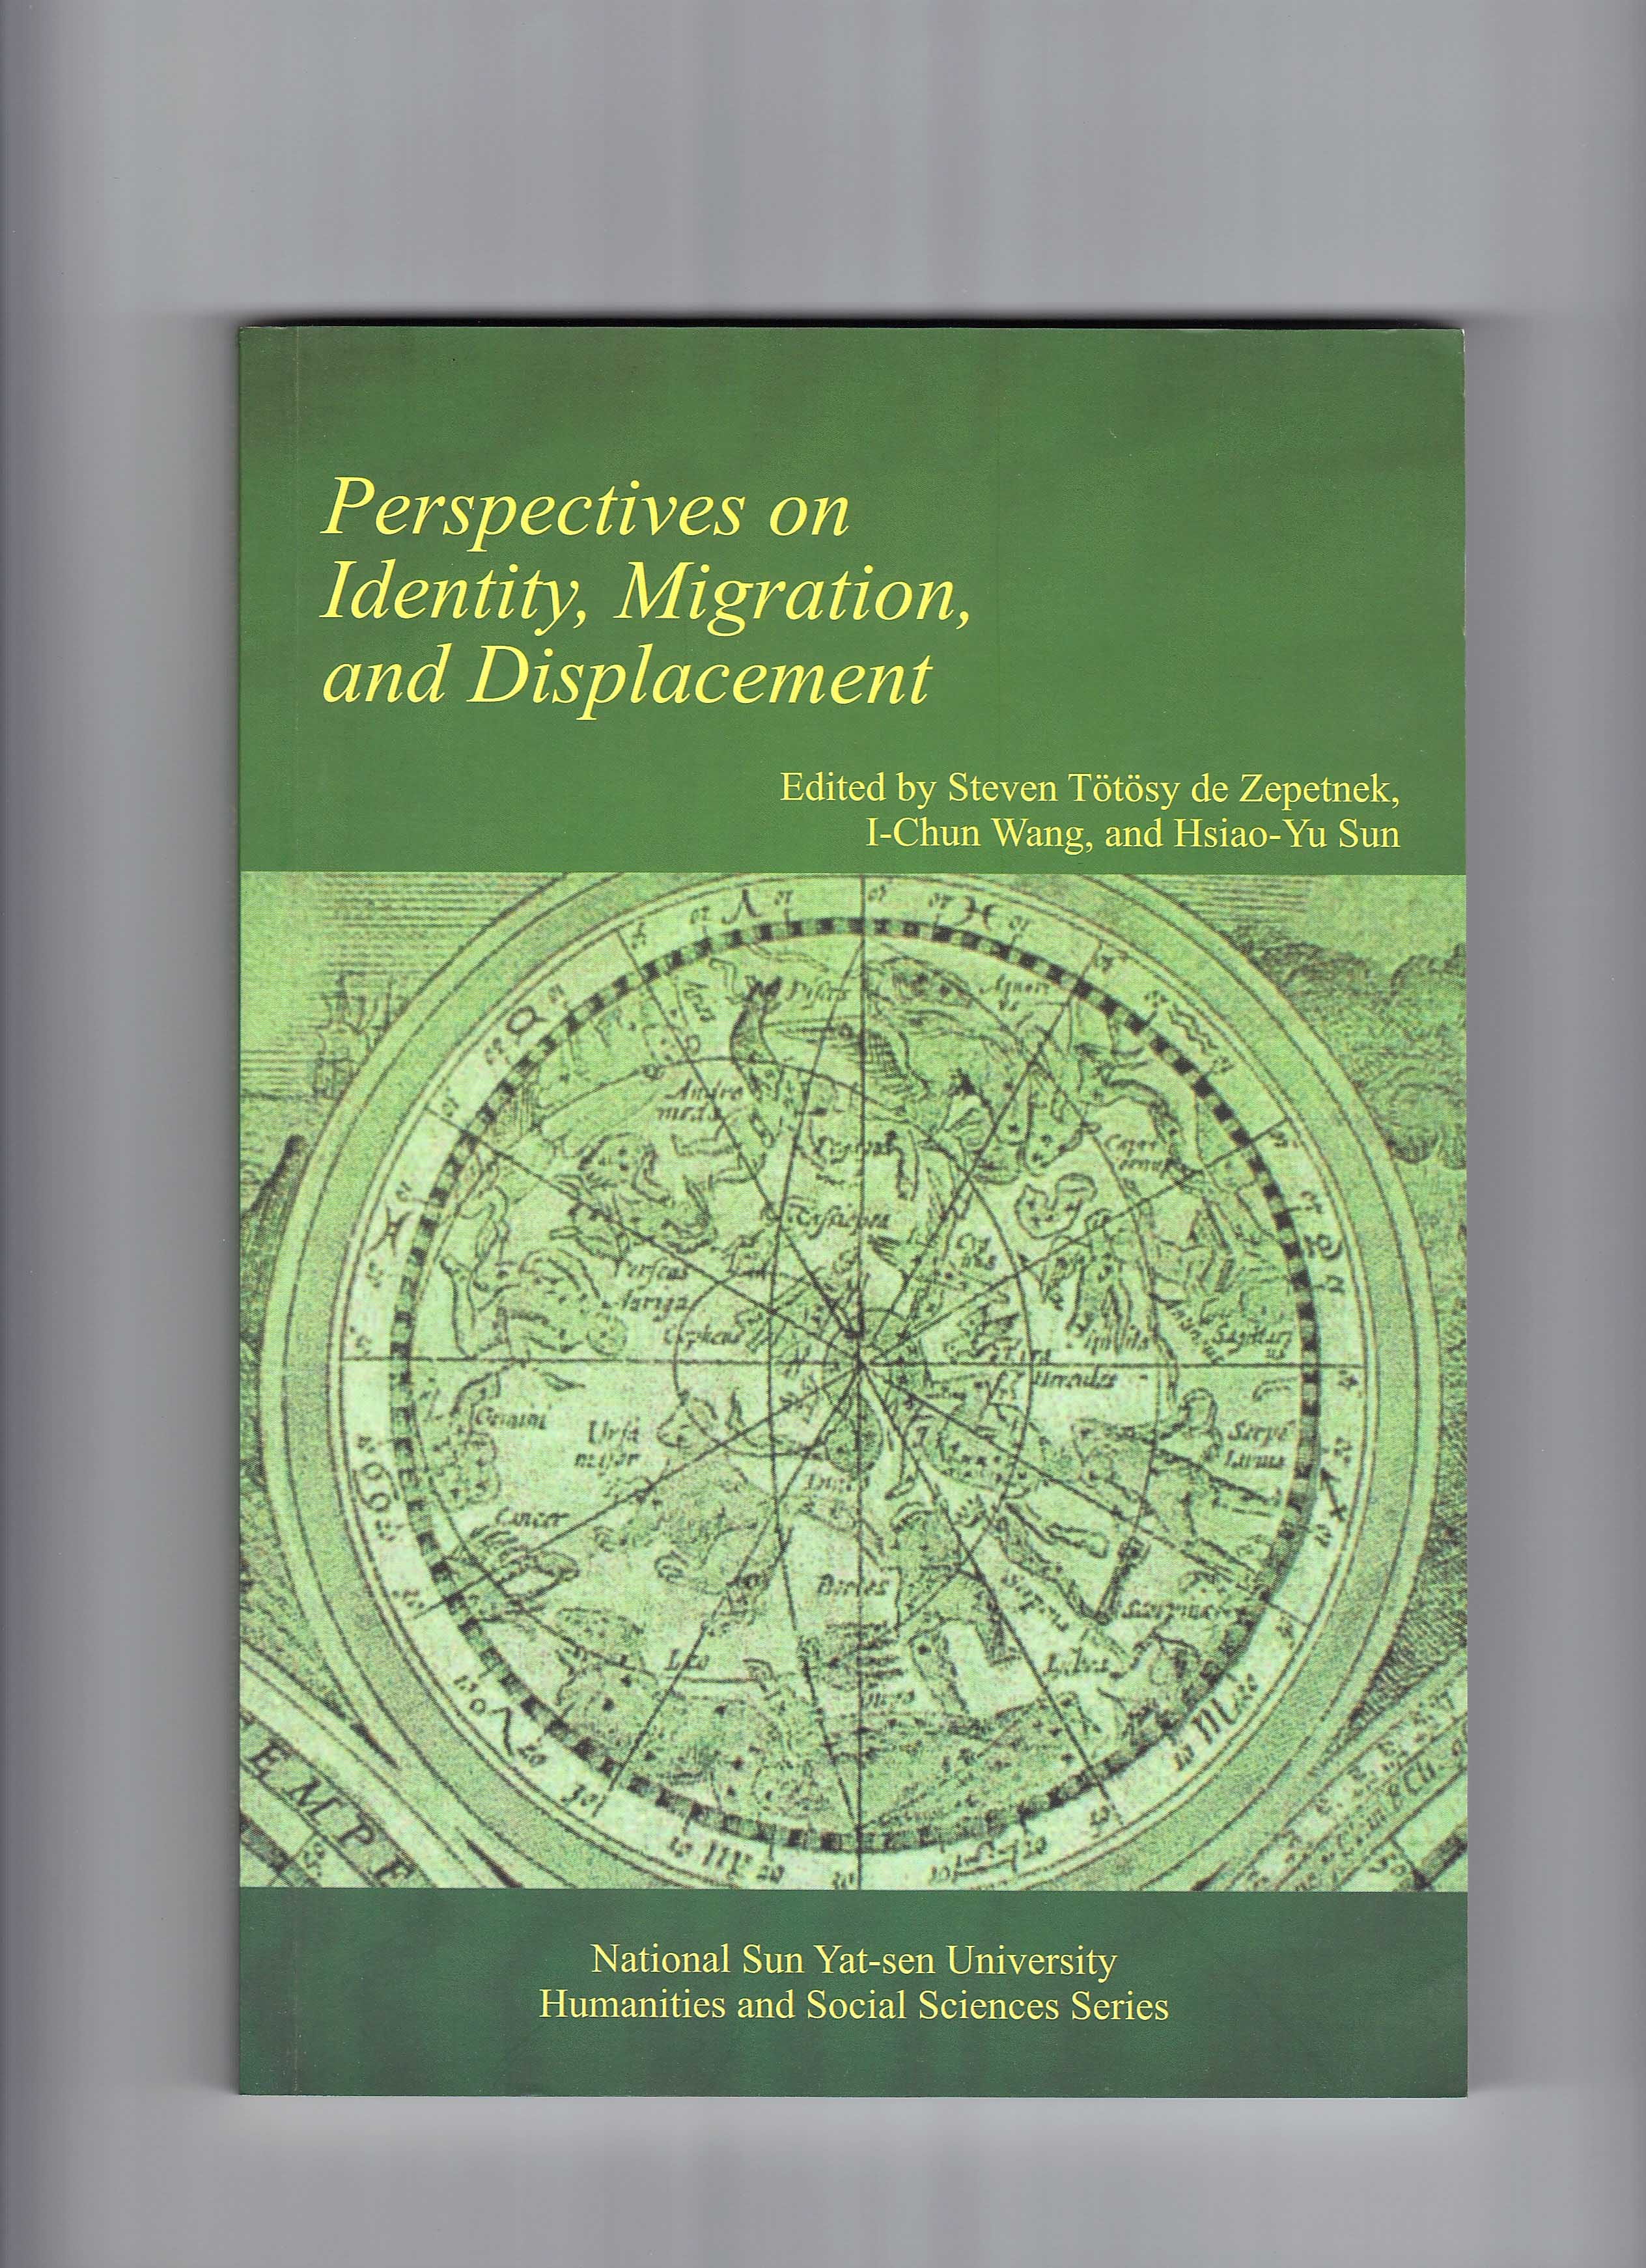 Perspectives on Identity, Migration, and Displacement. Ed. Steven T�t�sy de Zepetnek, I-Chun Wang, and Hsiao-Yu Sun. Kaohsiung: National Sun Yat-sen University Press, 2010.